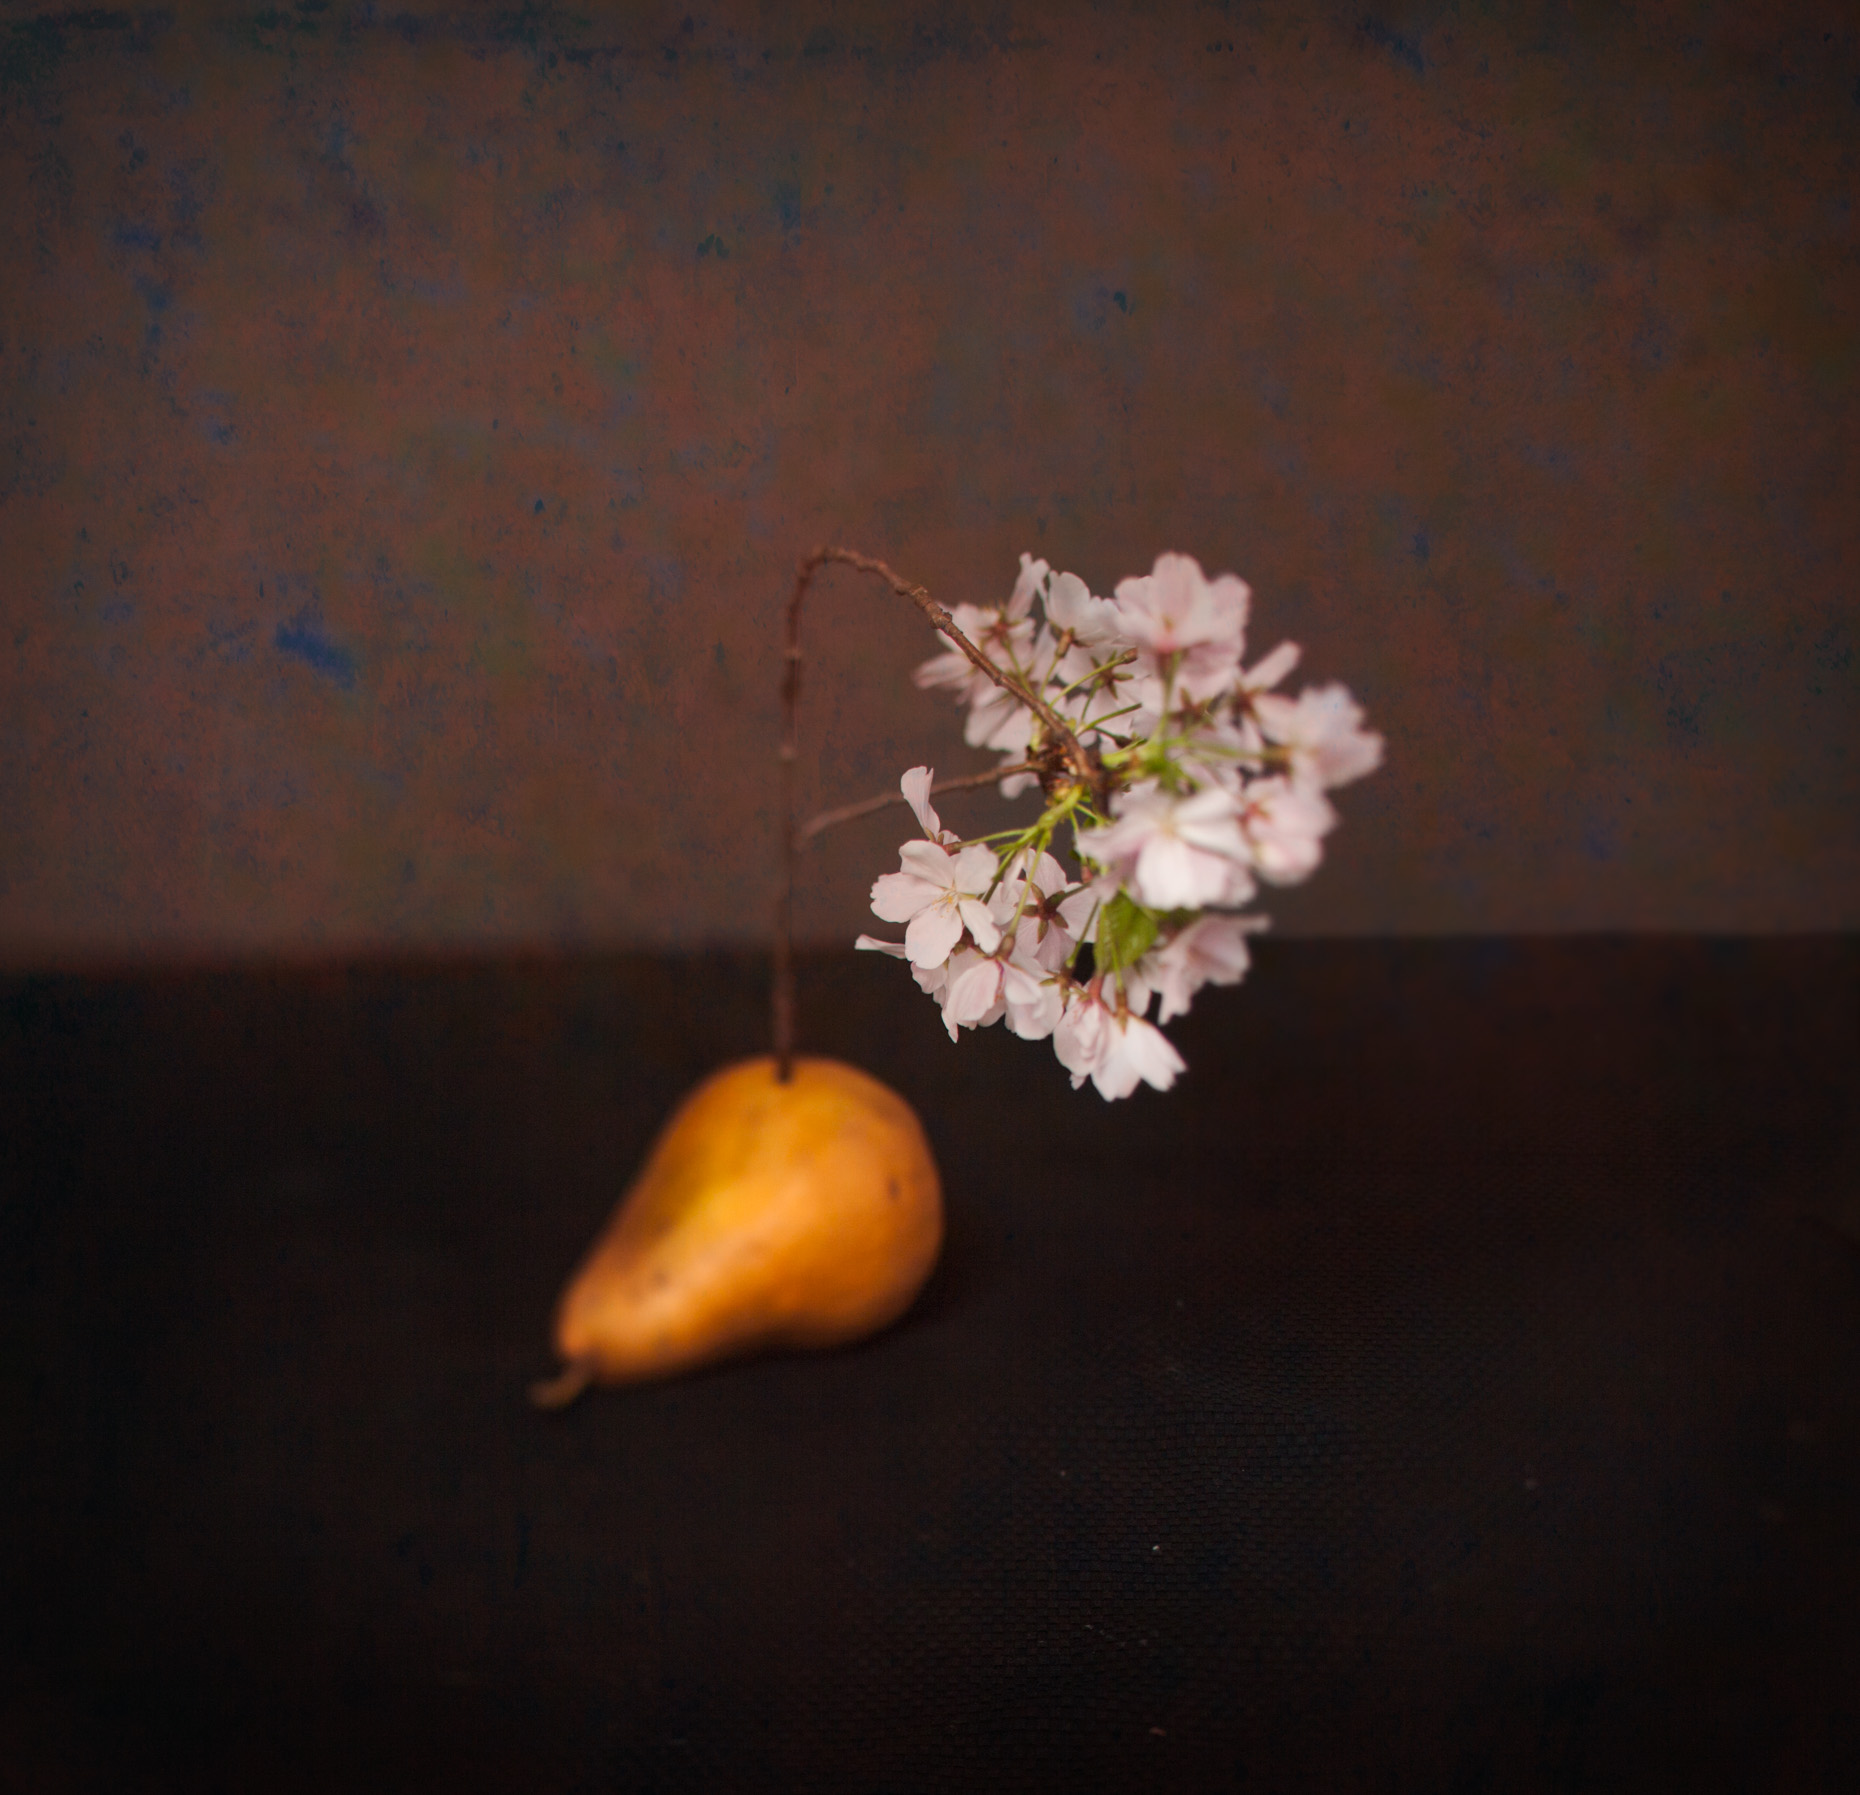 cherry flowers-pear